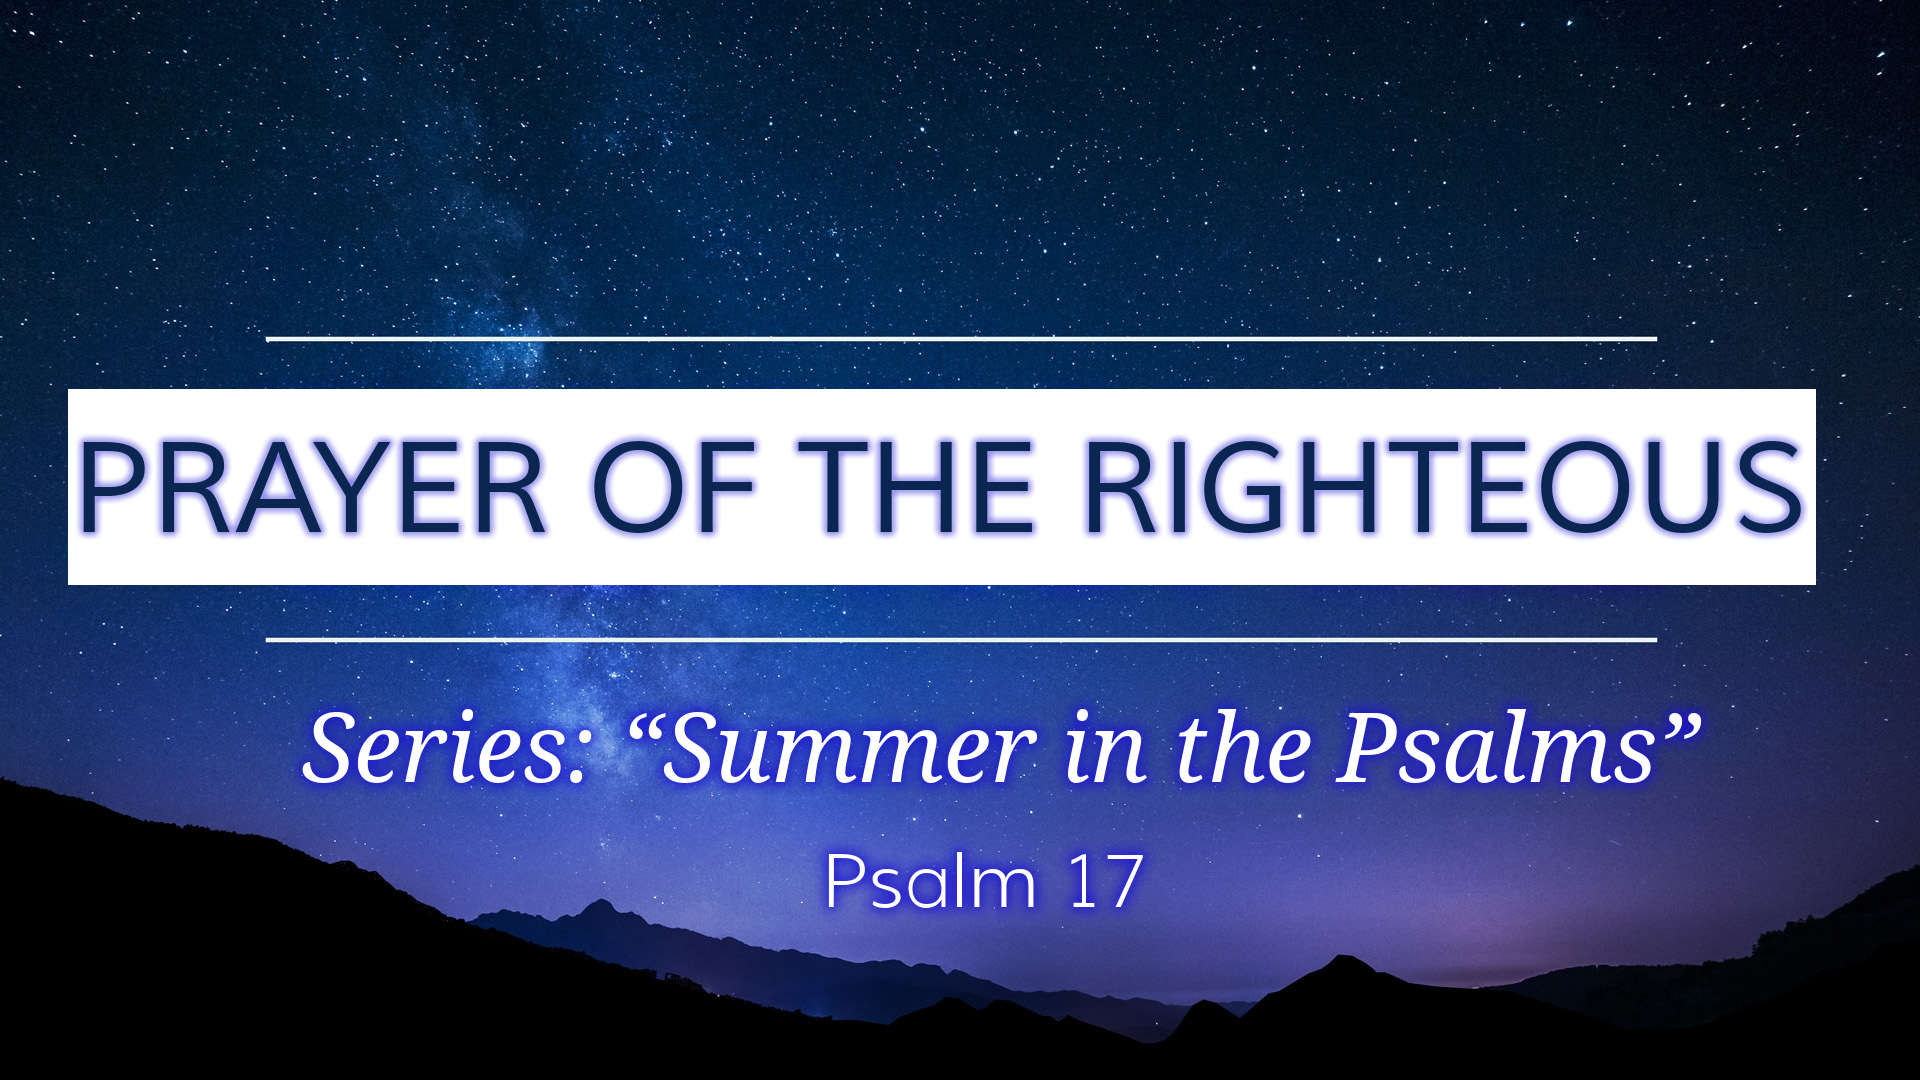 Image for the sermon Prayer of the Righteous